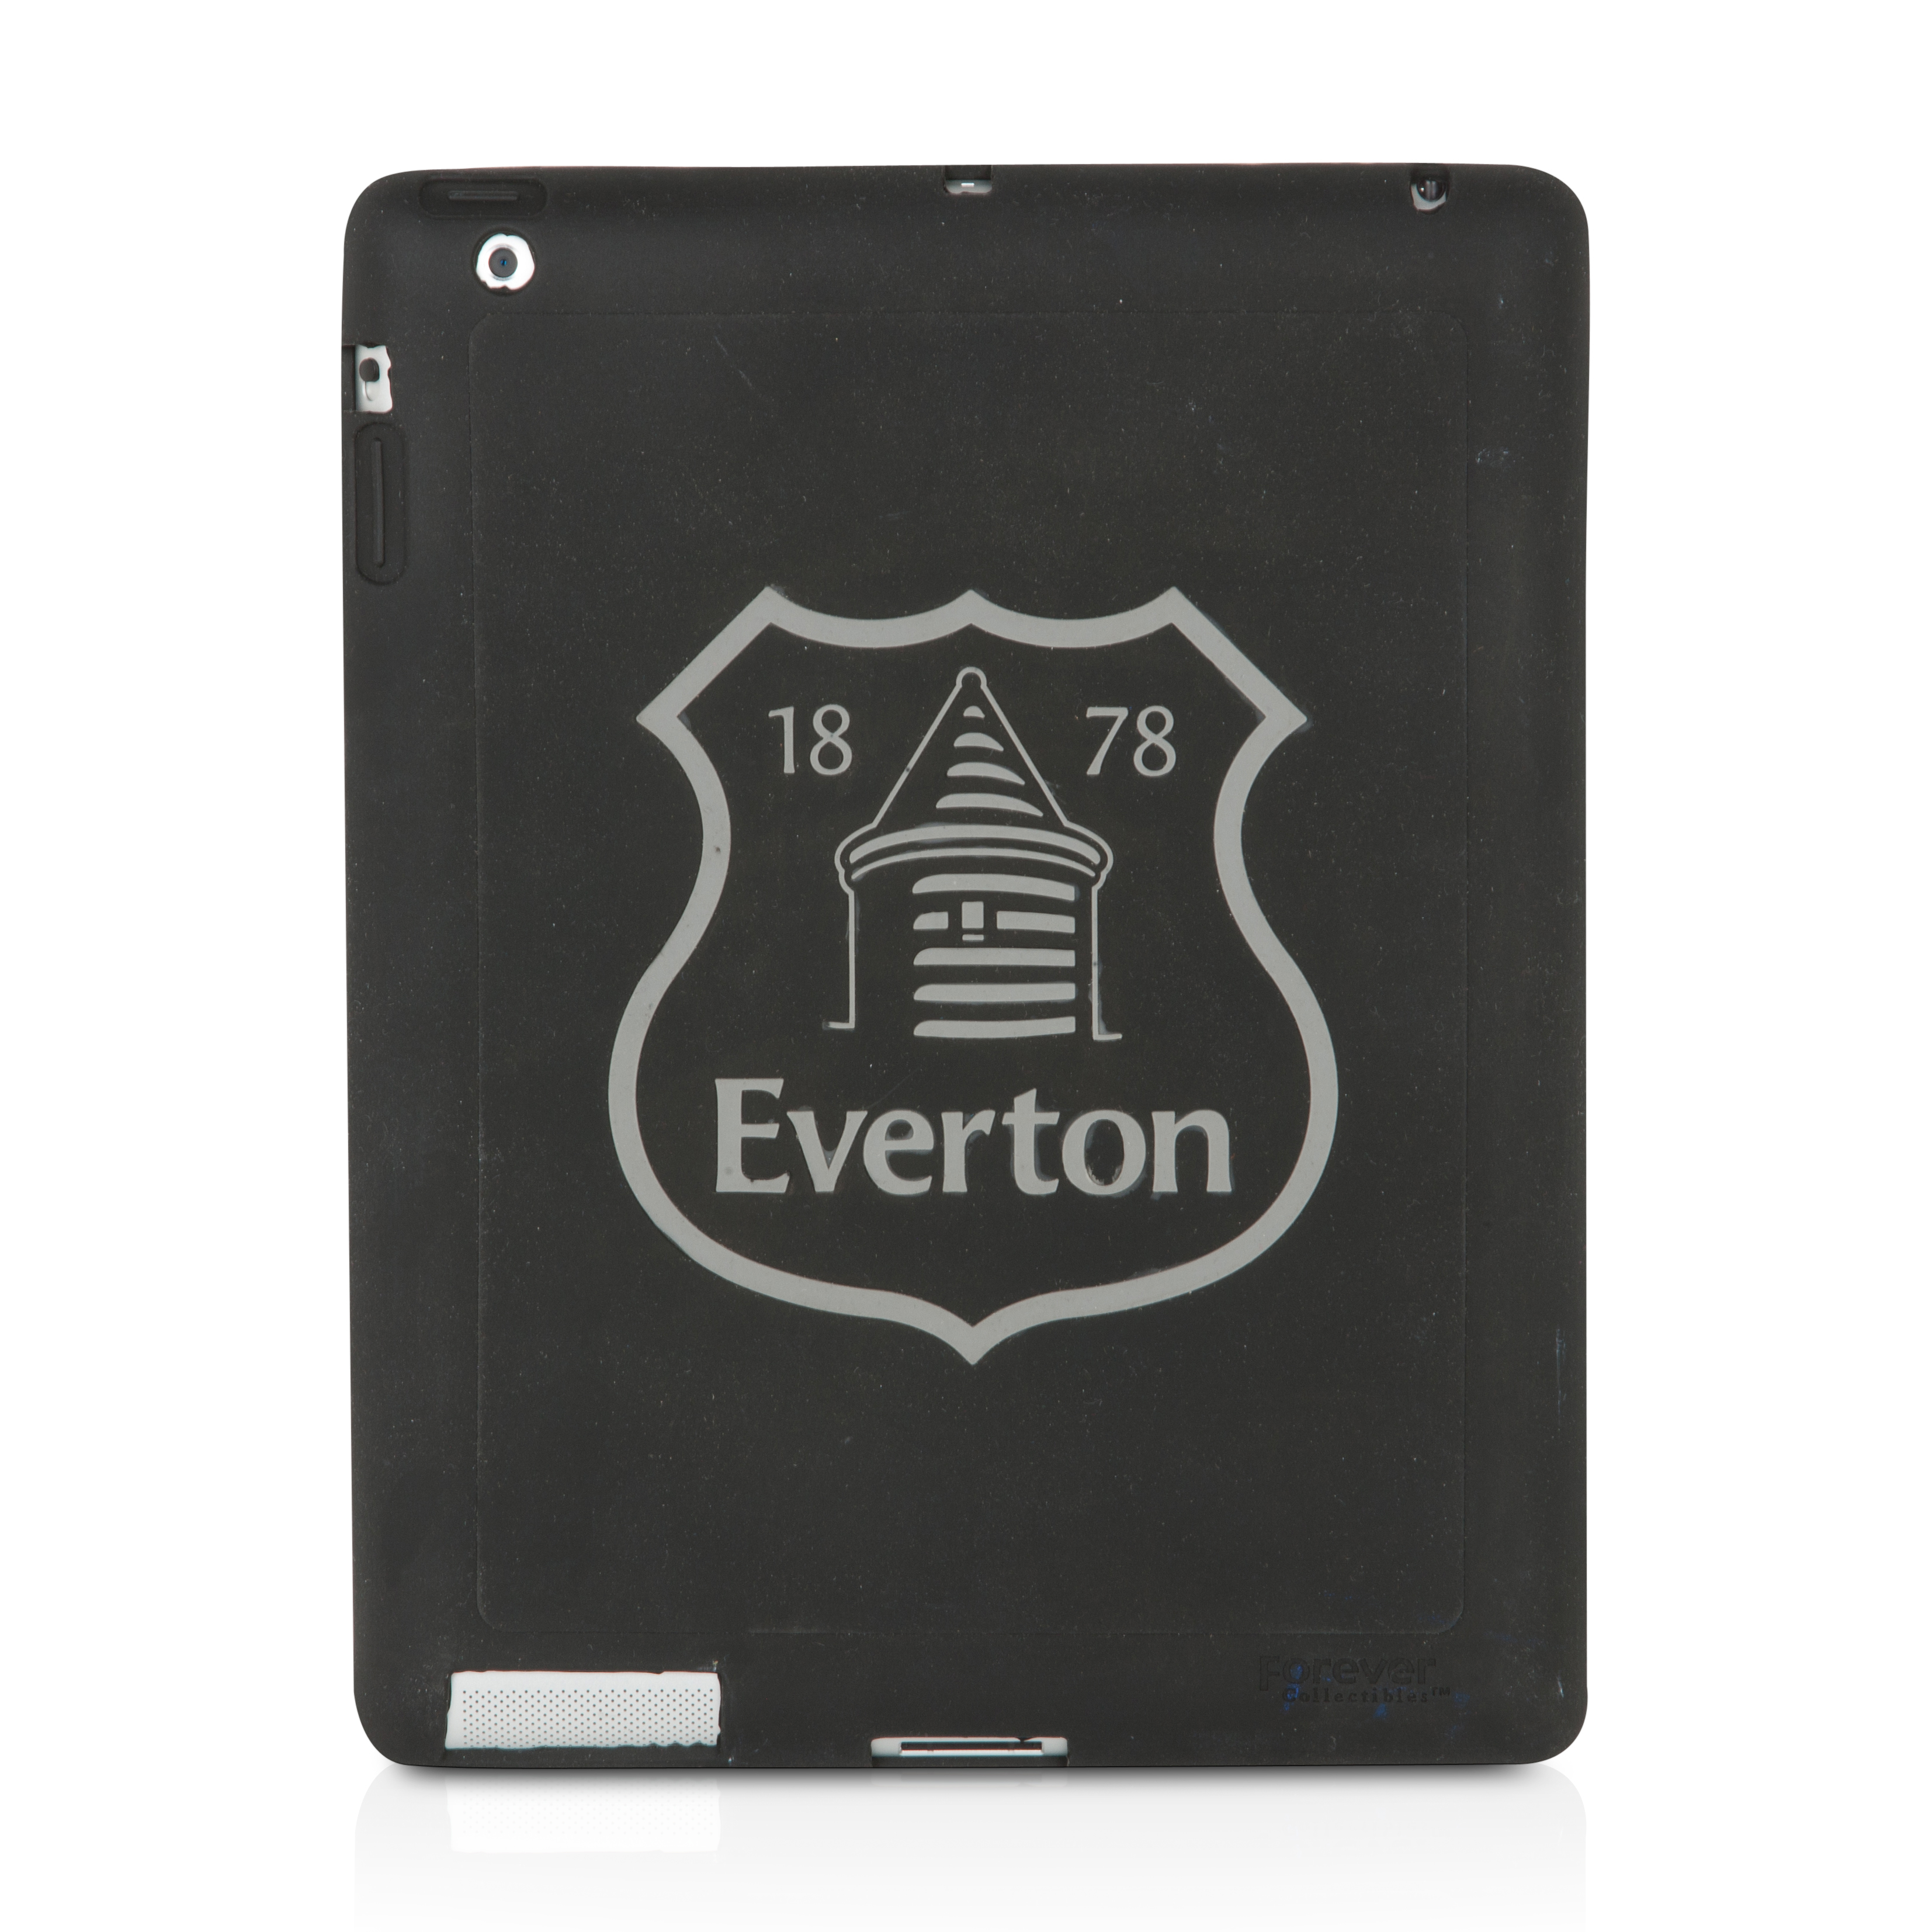 Everton Crest Ipad Silicon Skin